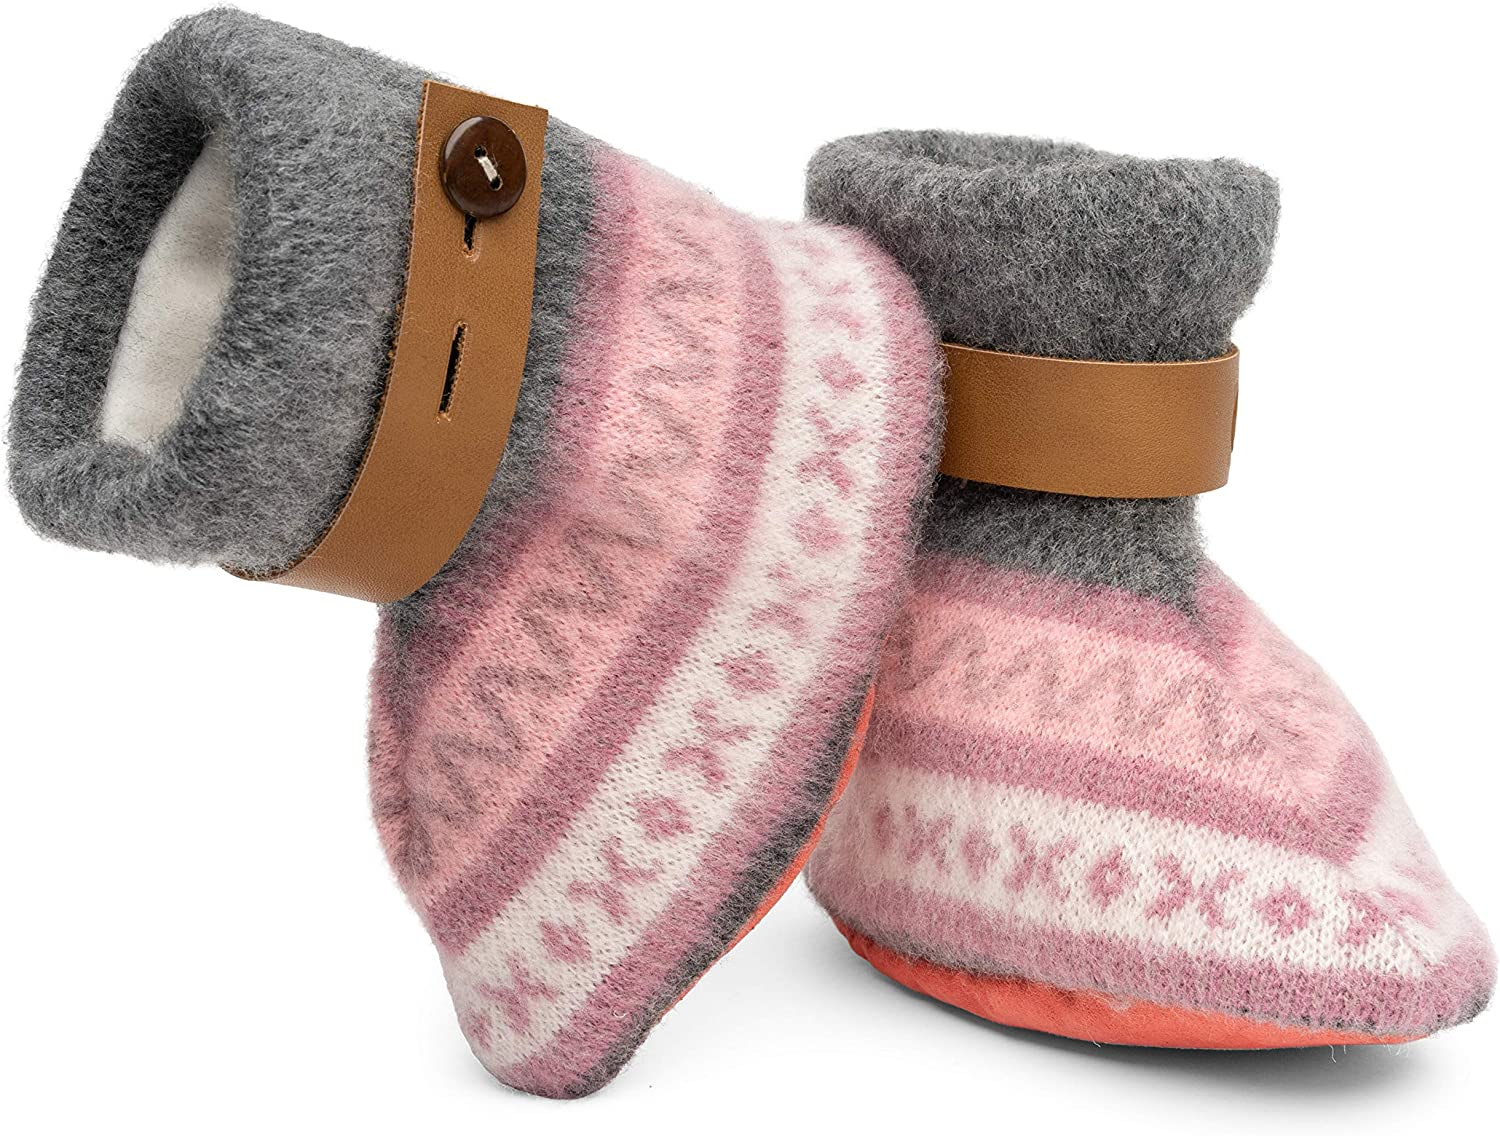 Designer Boots QISU Polar Fleece Baby Booties for Girls and Boys Soft Comfort